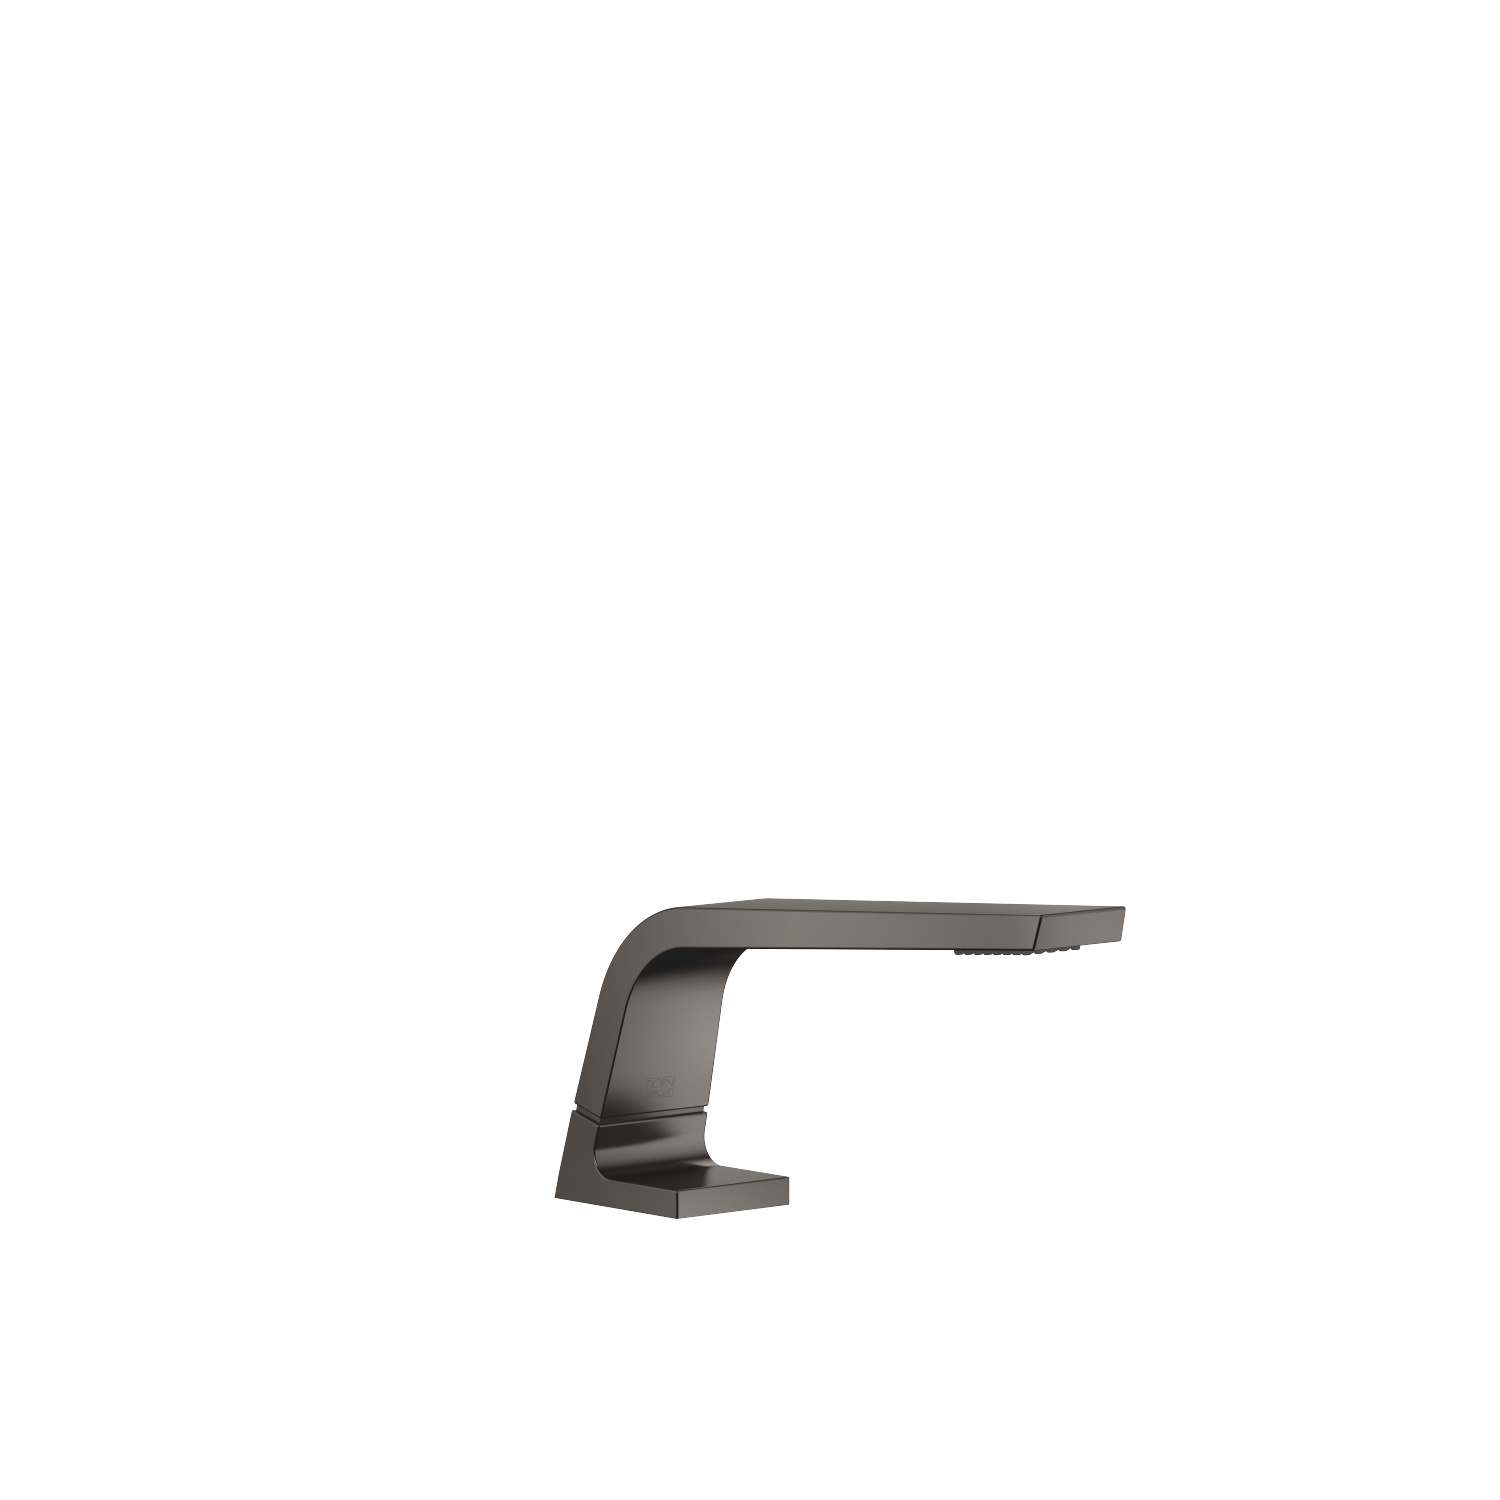 Lavatory spout, deck-mounted without drain - Dark Platinum matte